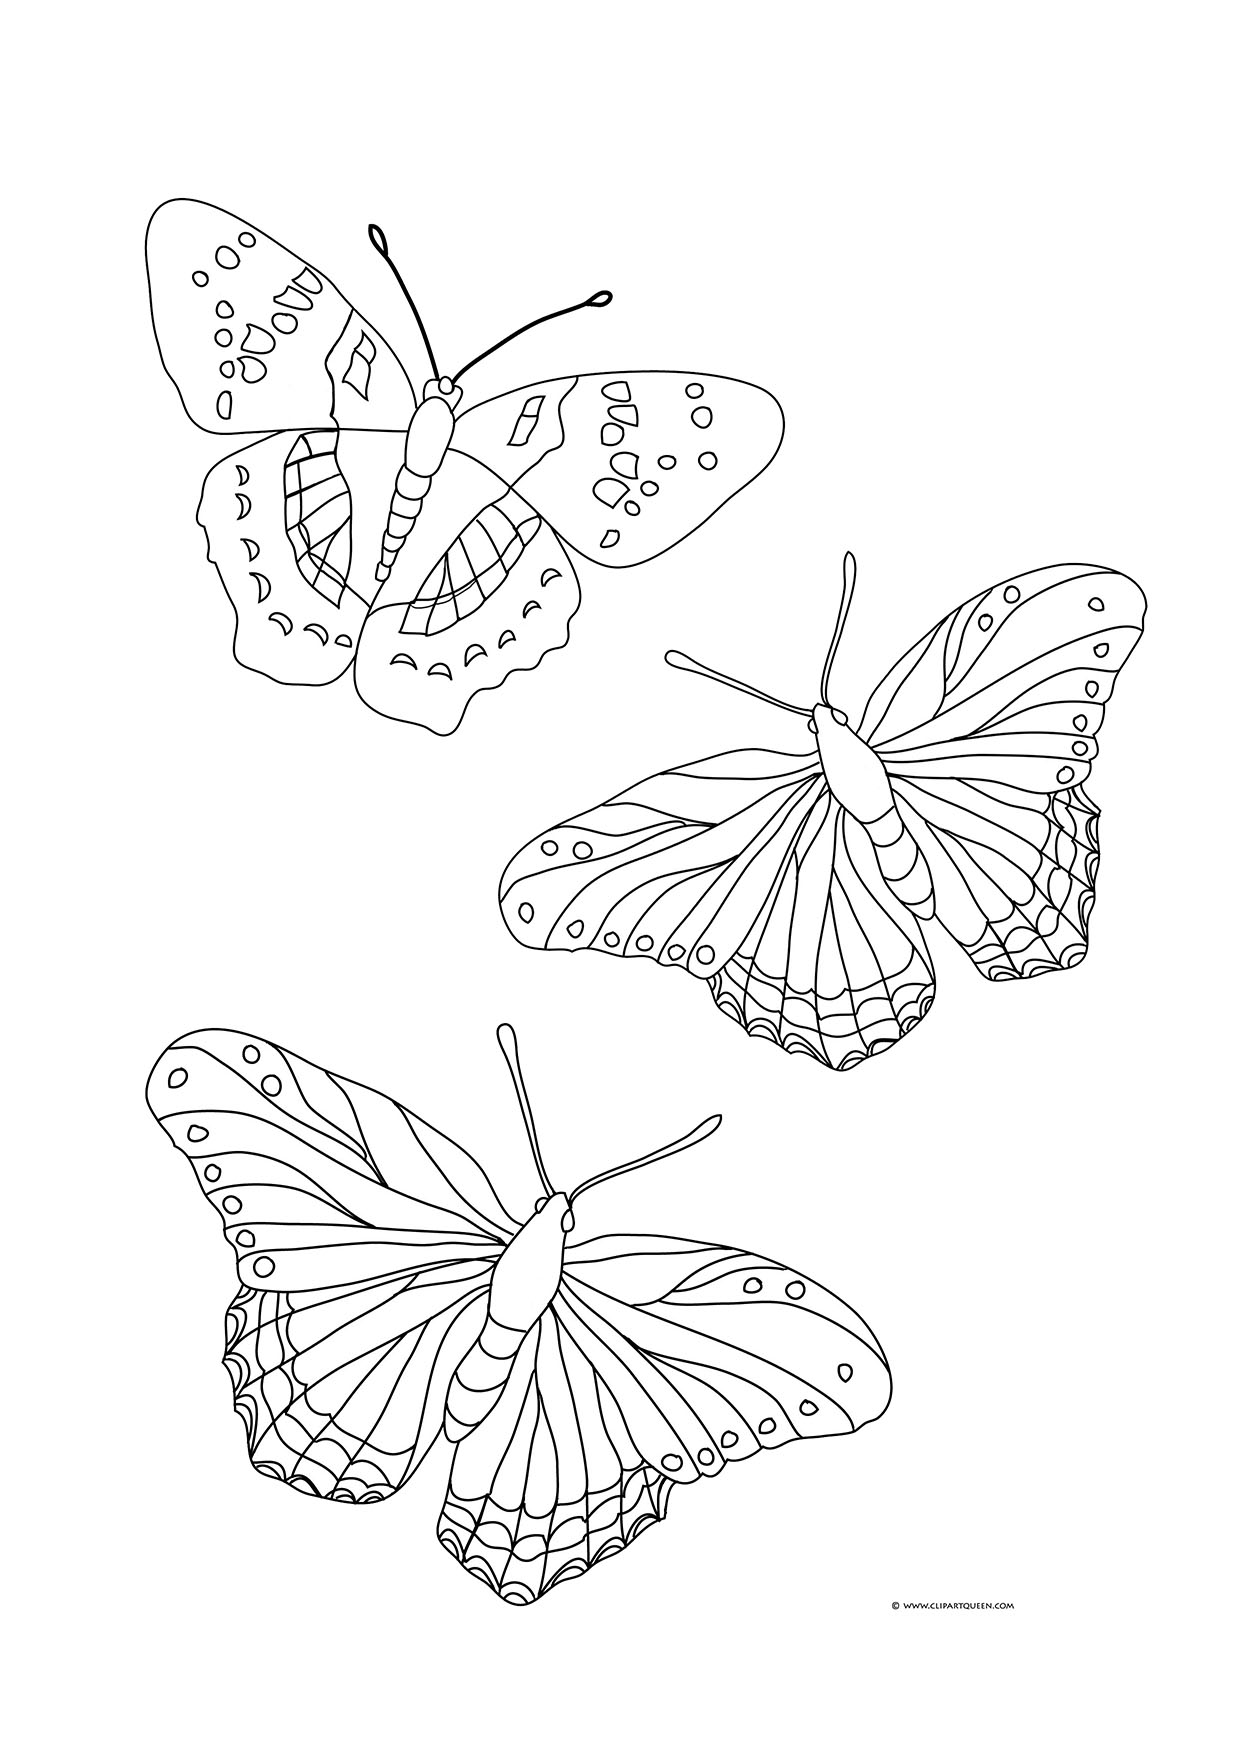 The cool drawings and funny clip art blog site blog for Cool drawings of butterflies